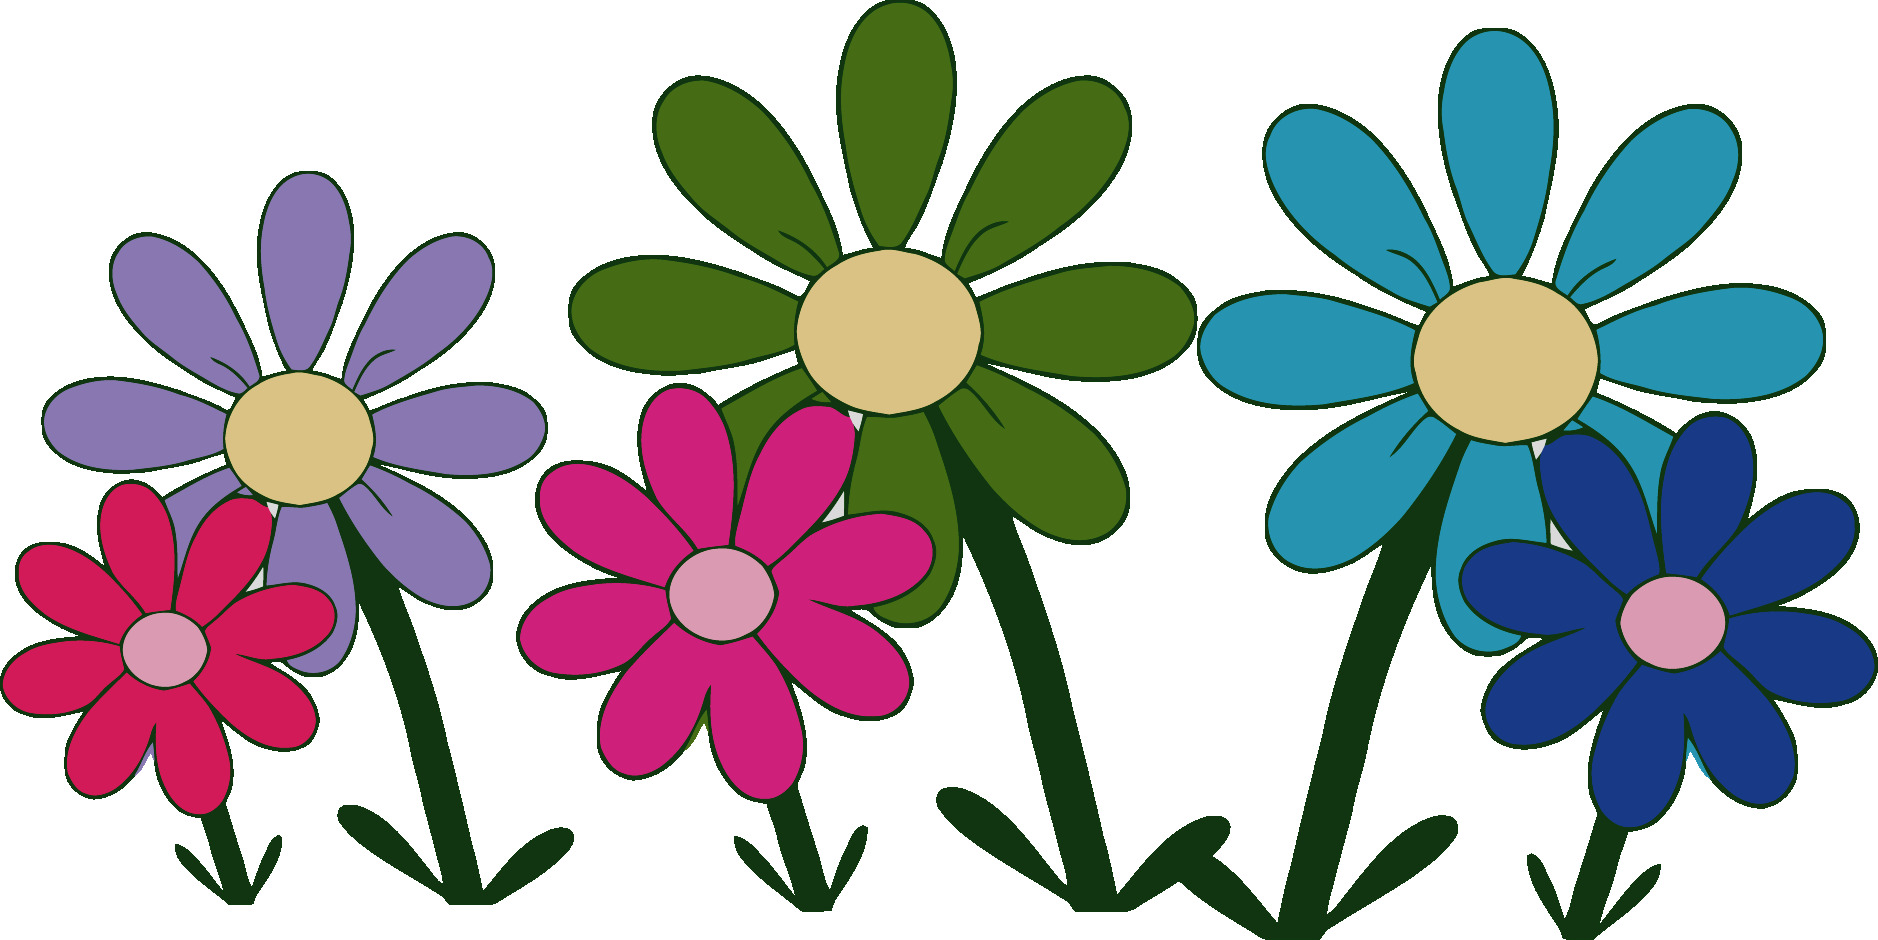 Blossom clipart cute. Collection flower clip art